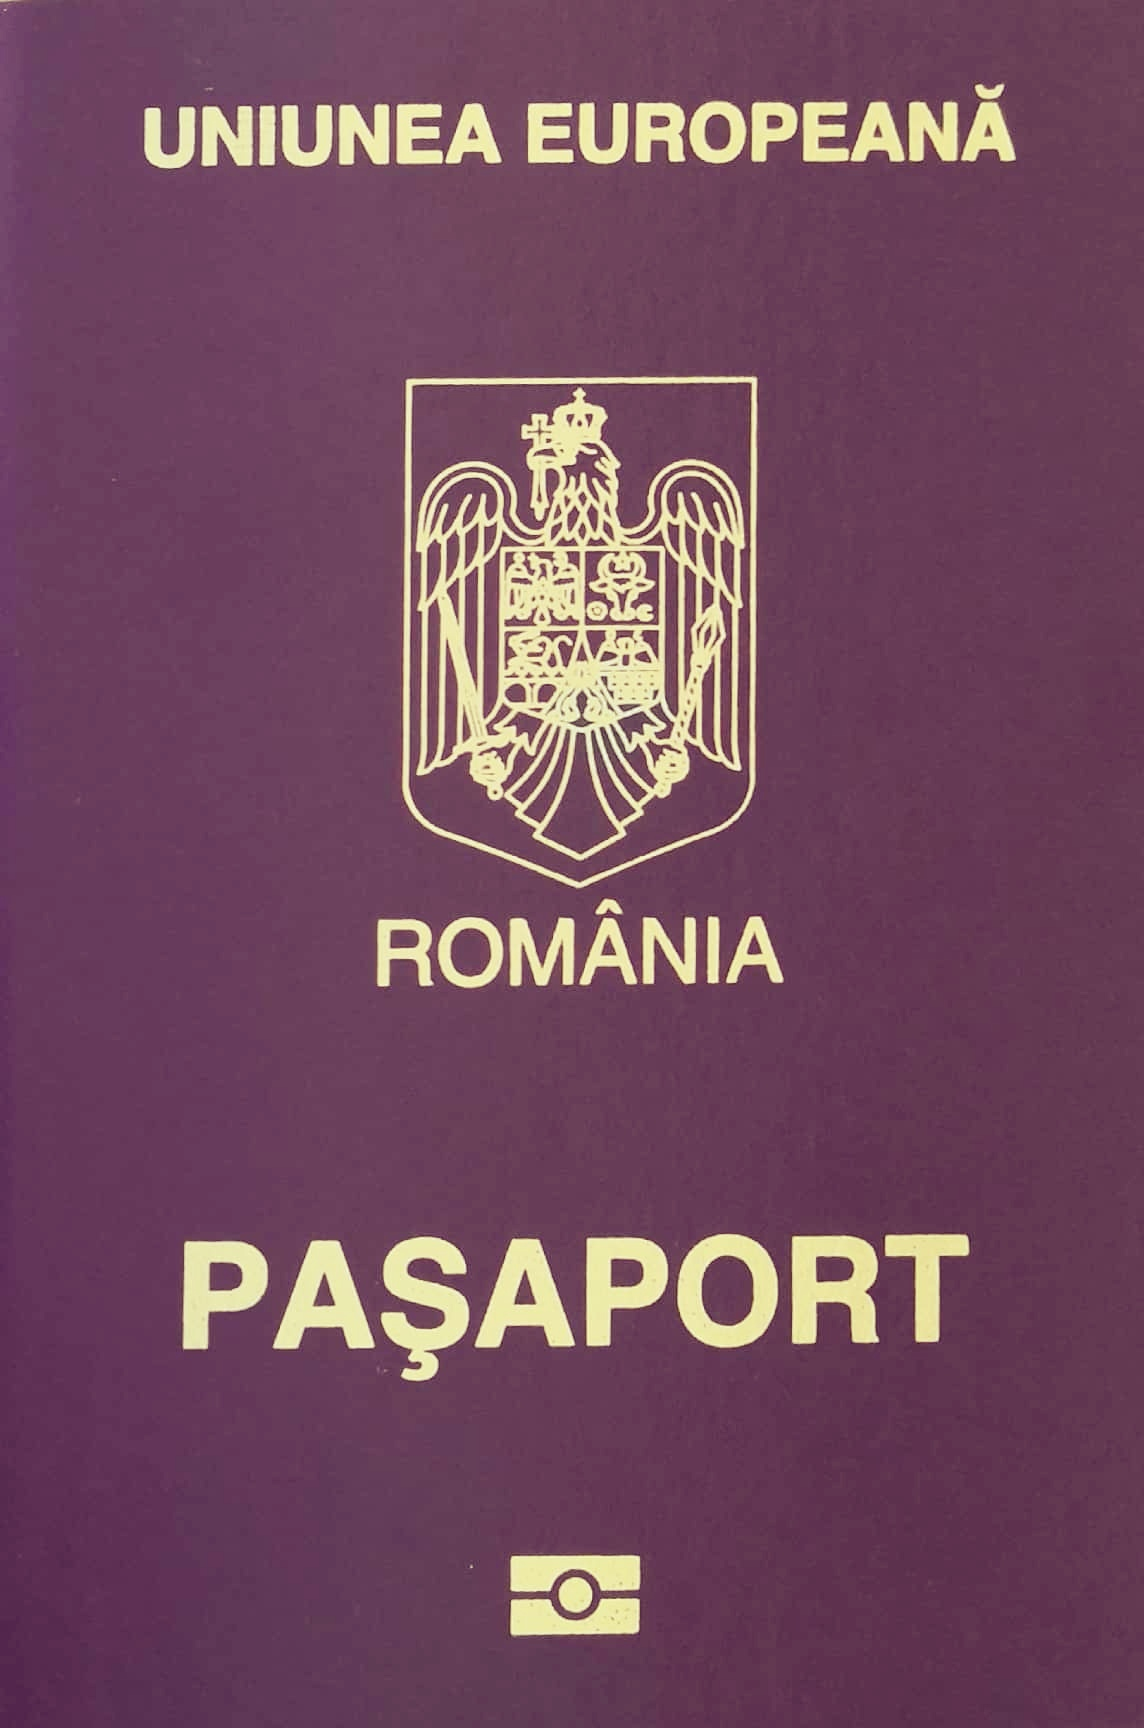 Visa requirements for Romanian citizens - Wikipedia